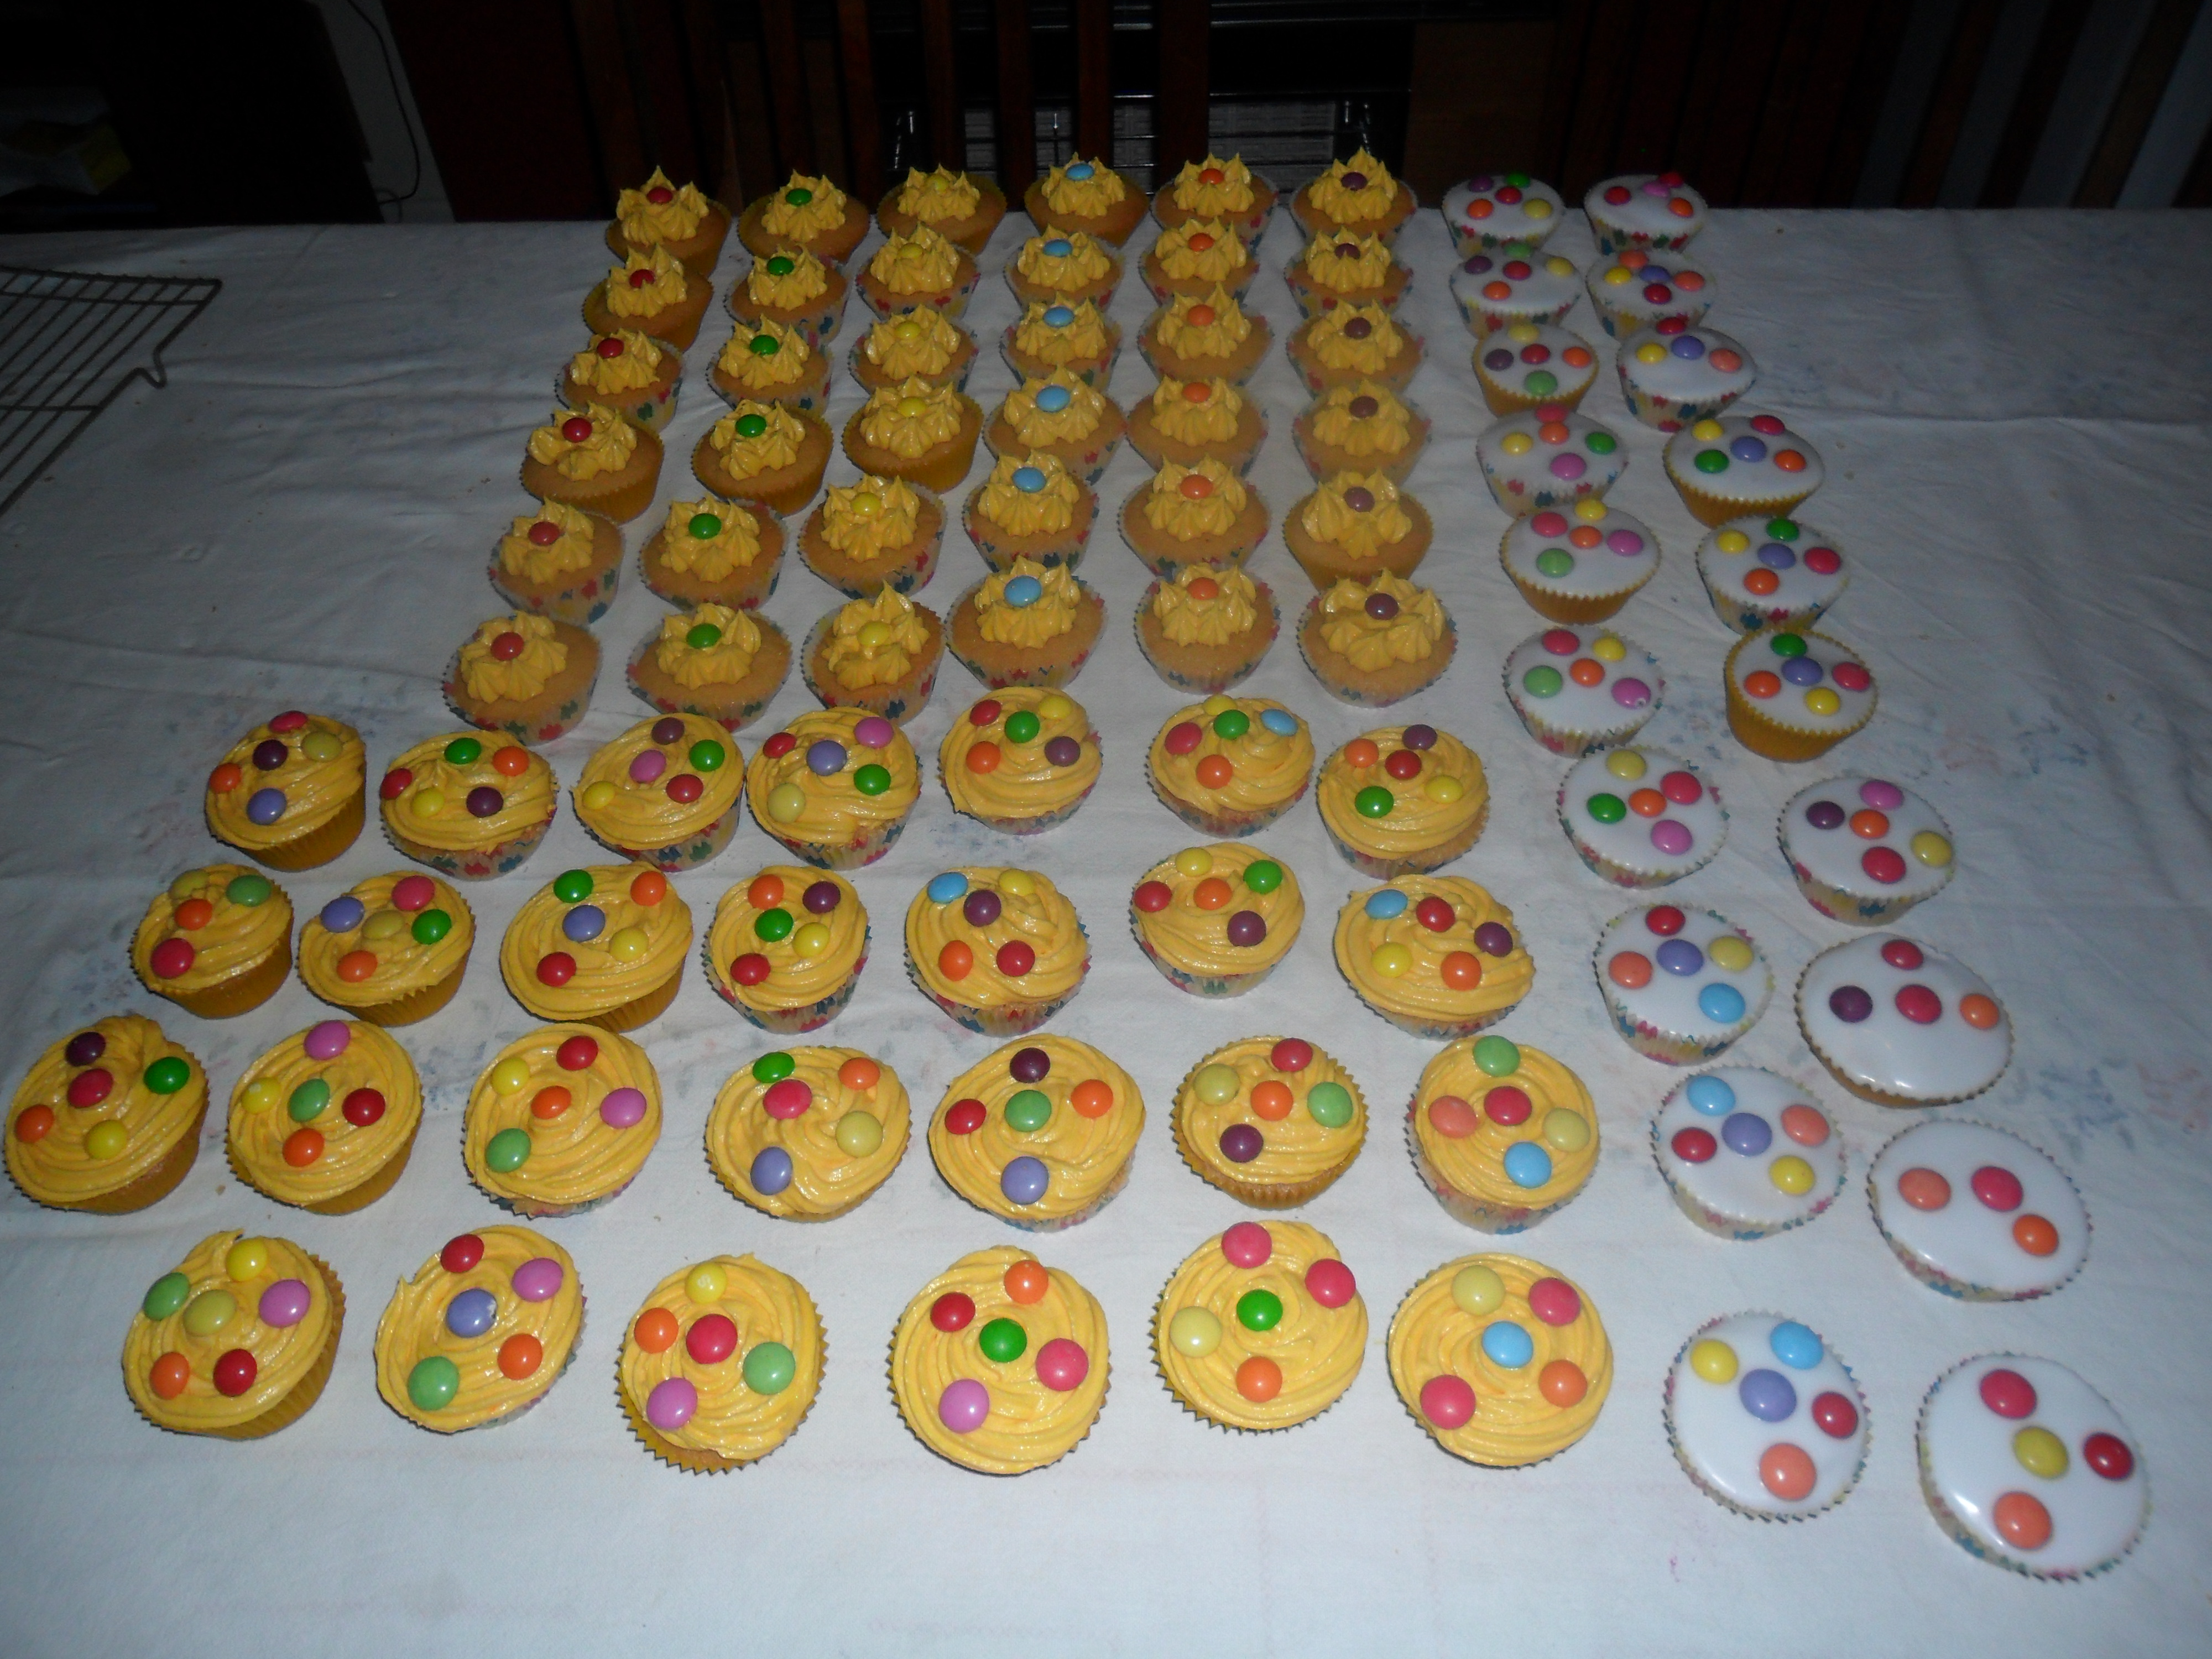 Decorating Cup Cakes, A Buttercream Frosting Recipe, And ...